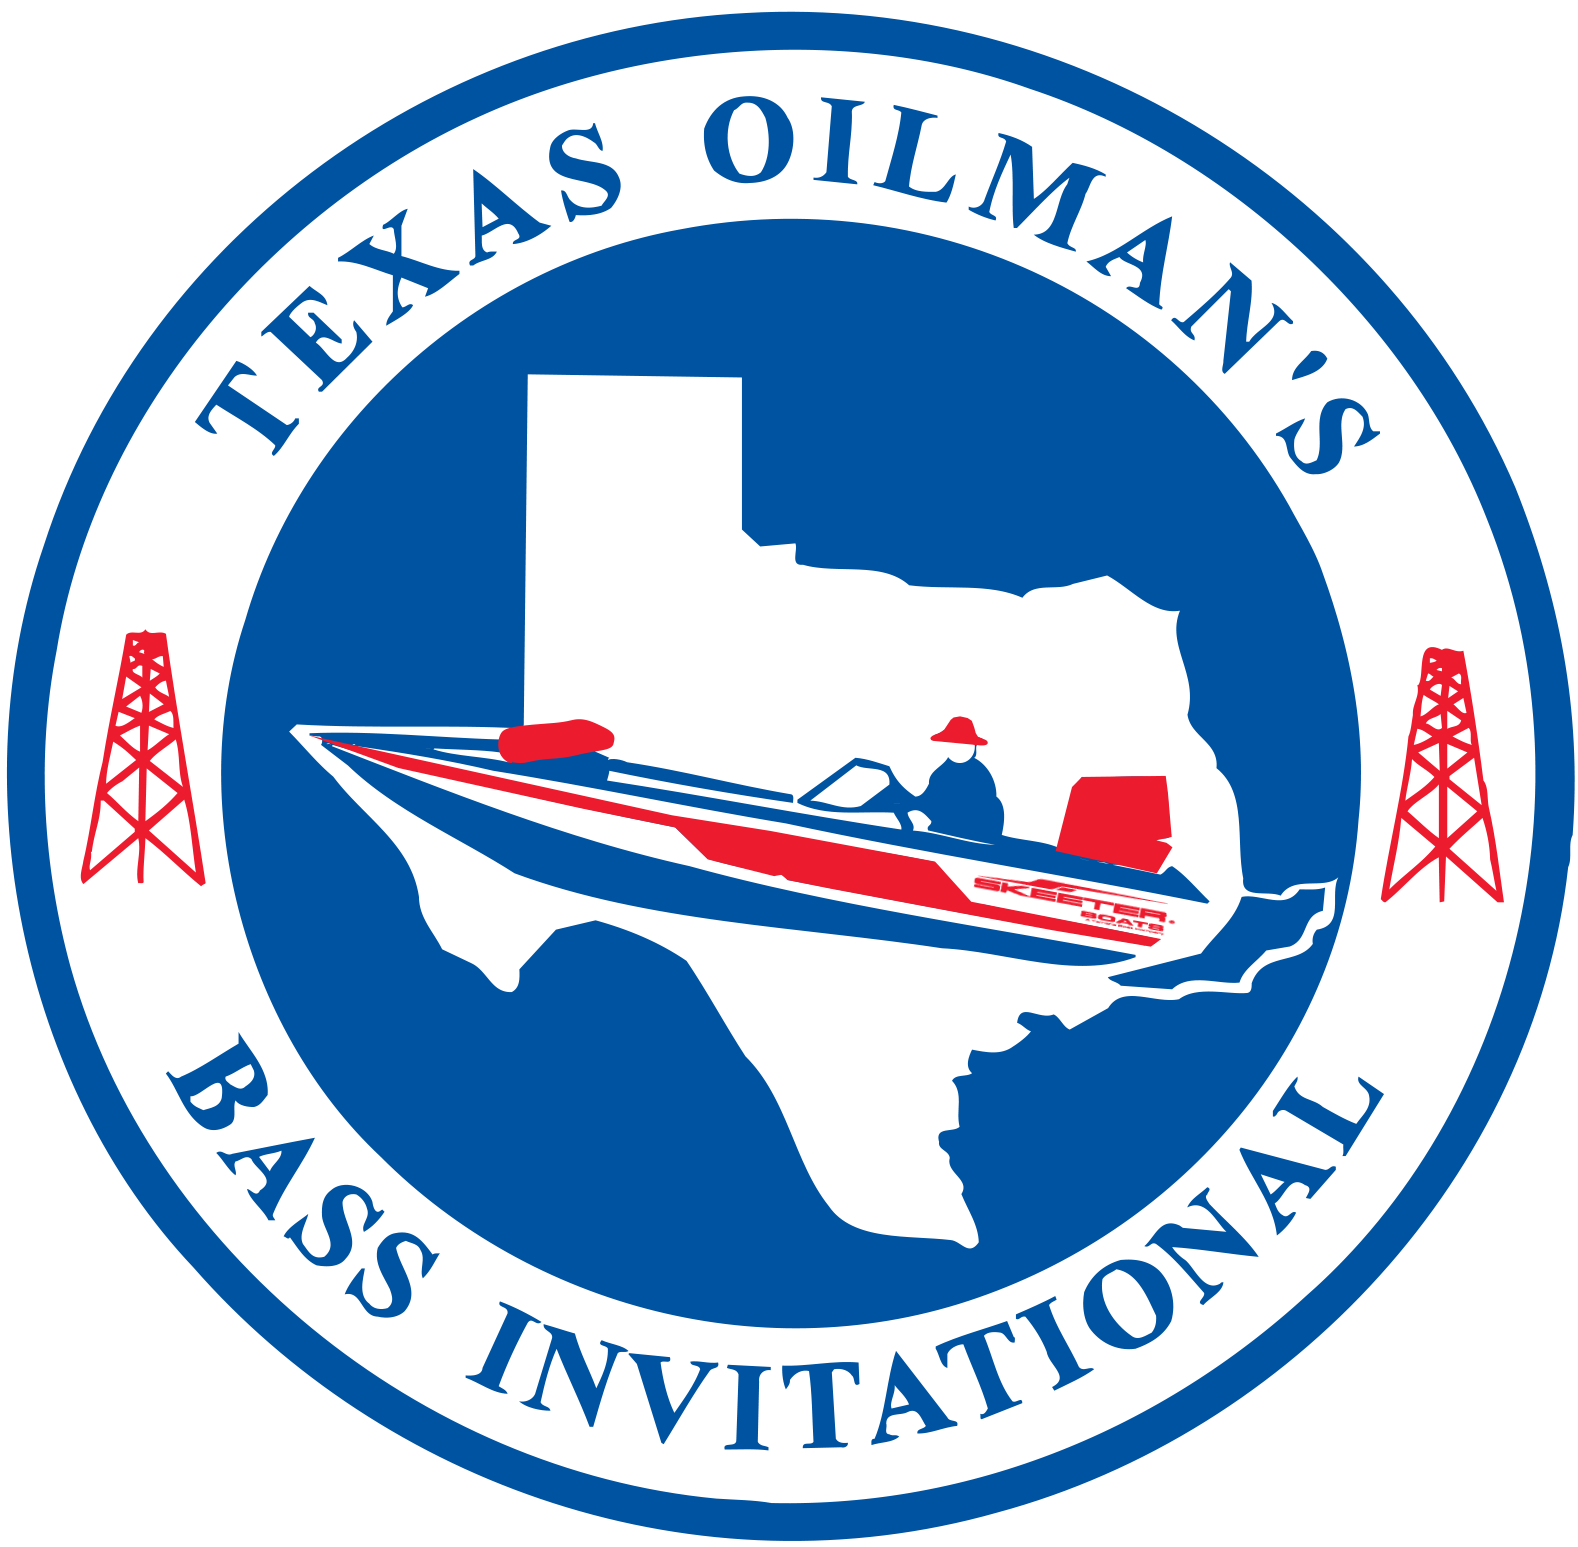 Texas Oilman's Bass Invitational